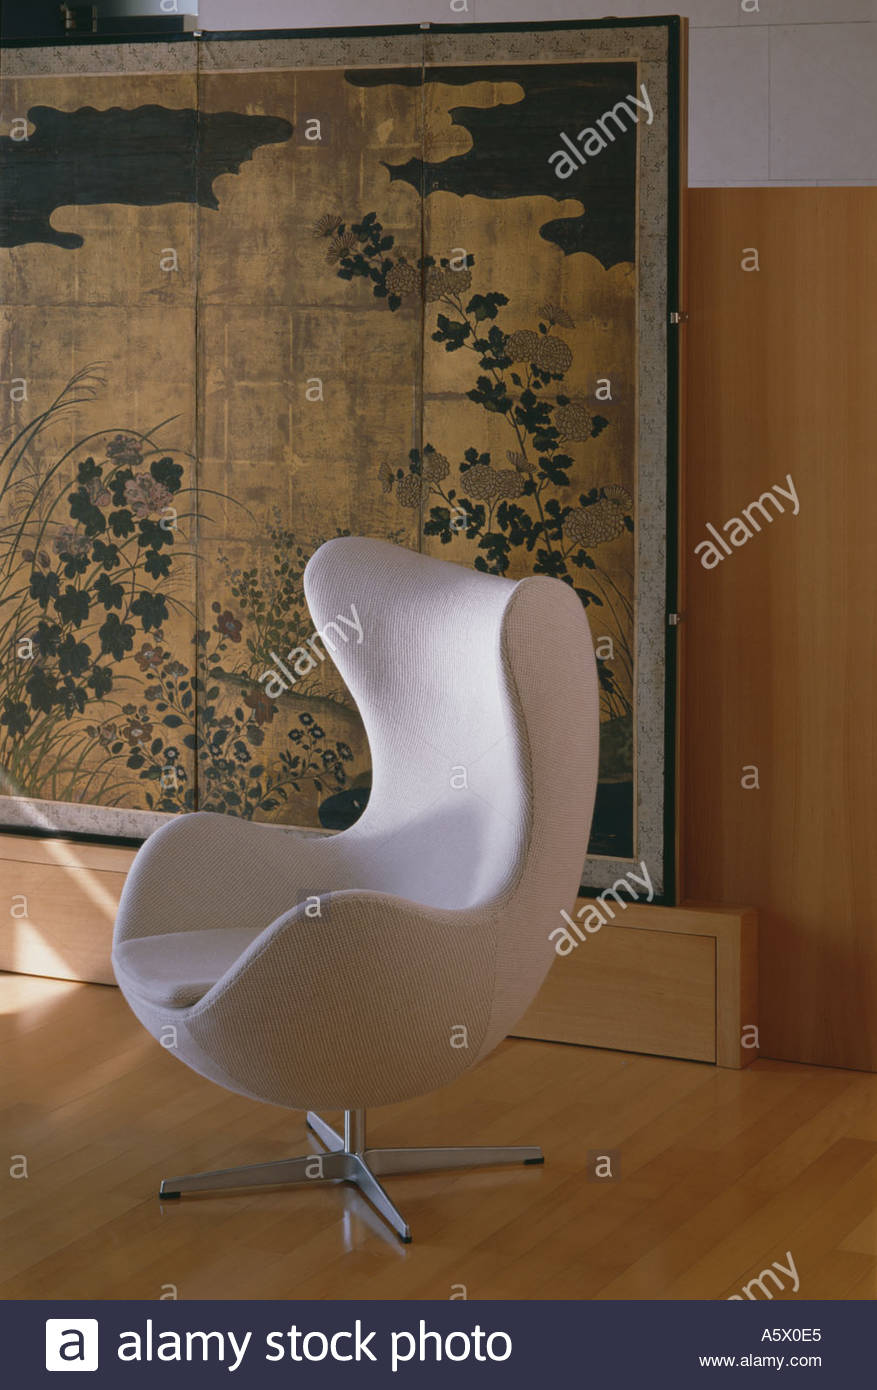 Poltrona Uovo Jacobsen Originale Arne Jacobsen Chair Immagini Arne Jacobsen Chair Fotos Stock Alamy